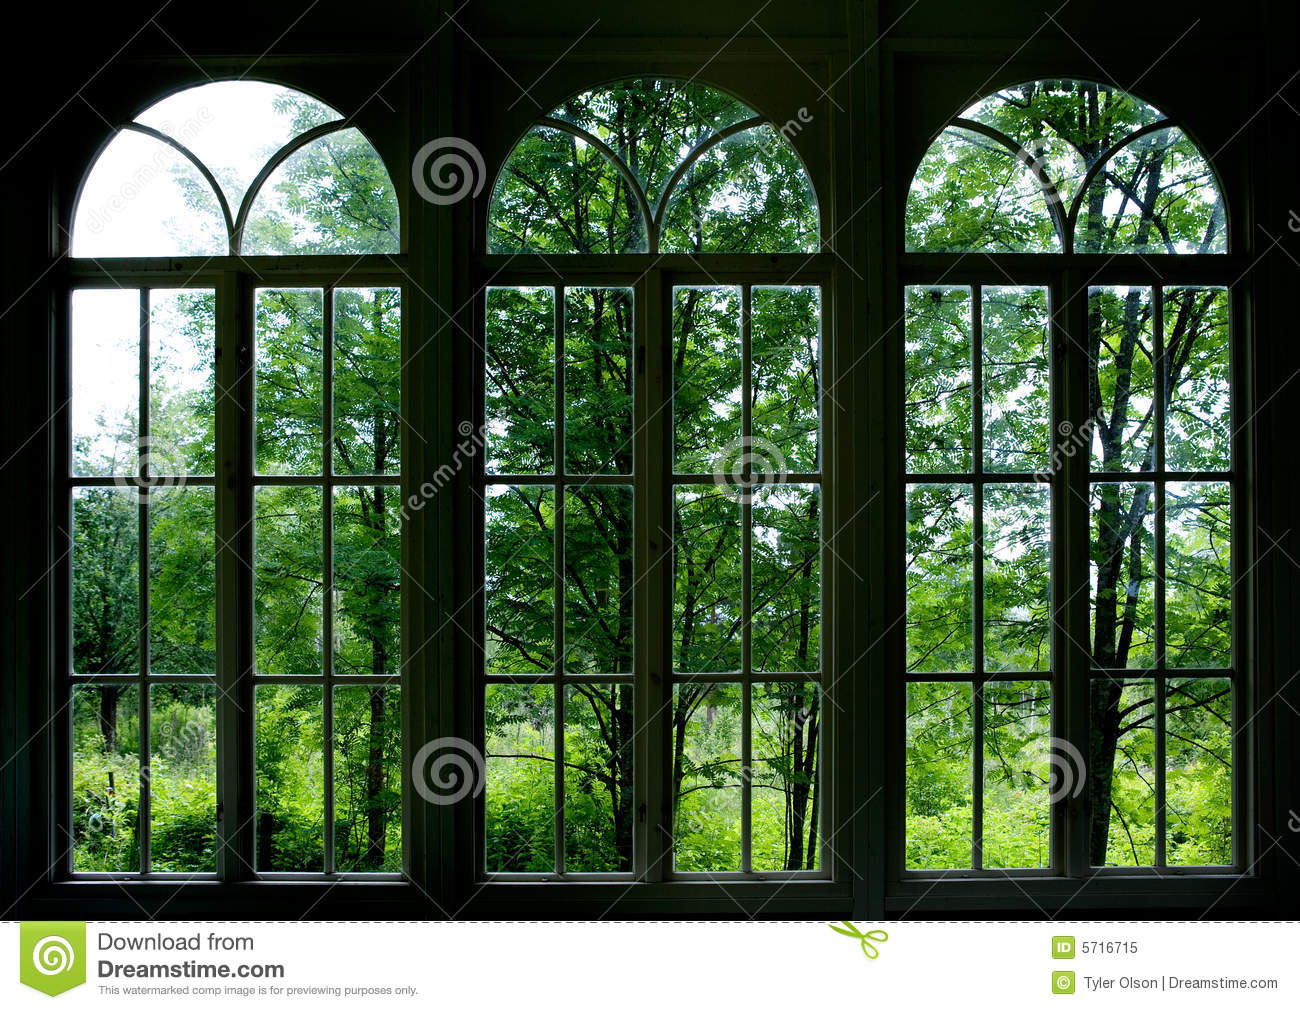 garten fenster stockbild bild von fenster nave panel 5716715. Black Bedroom Furniture Sets. Home Design Ideas